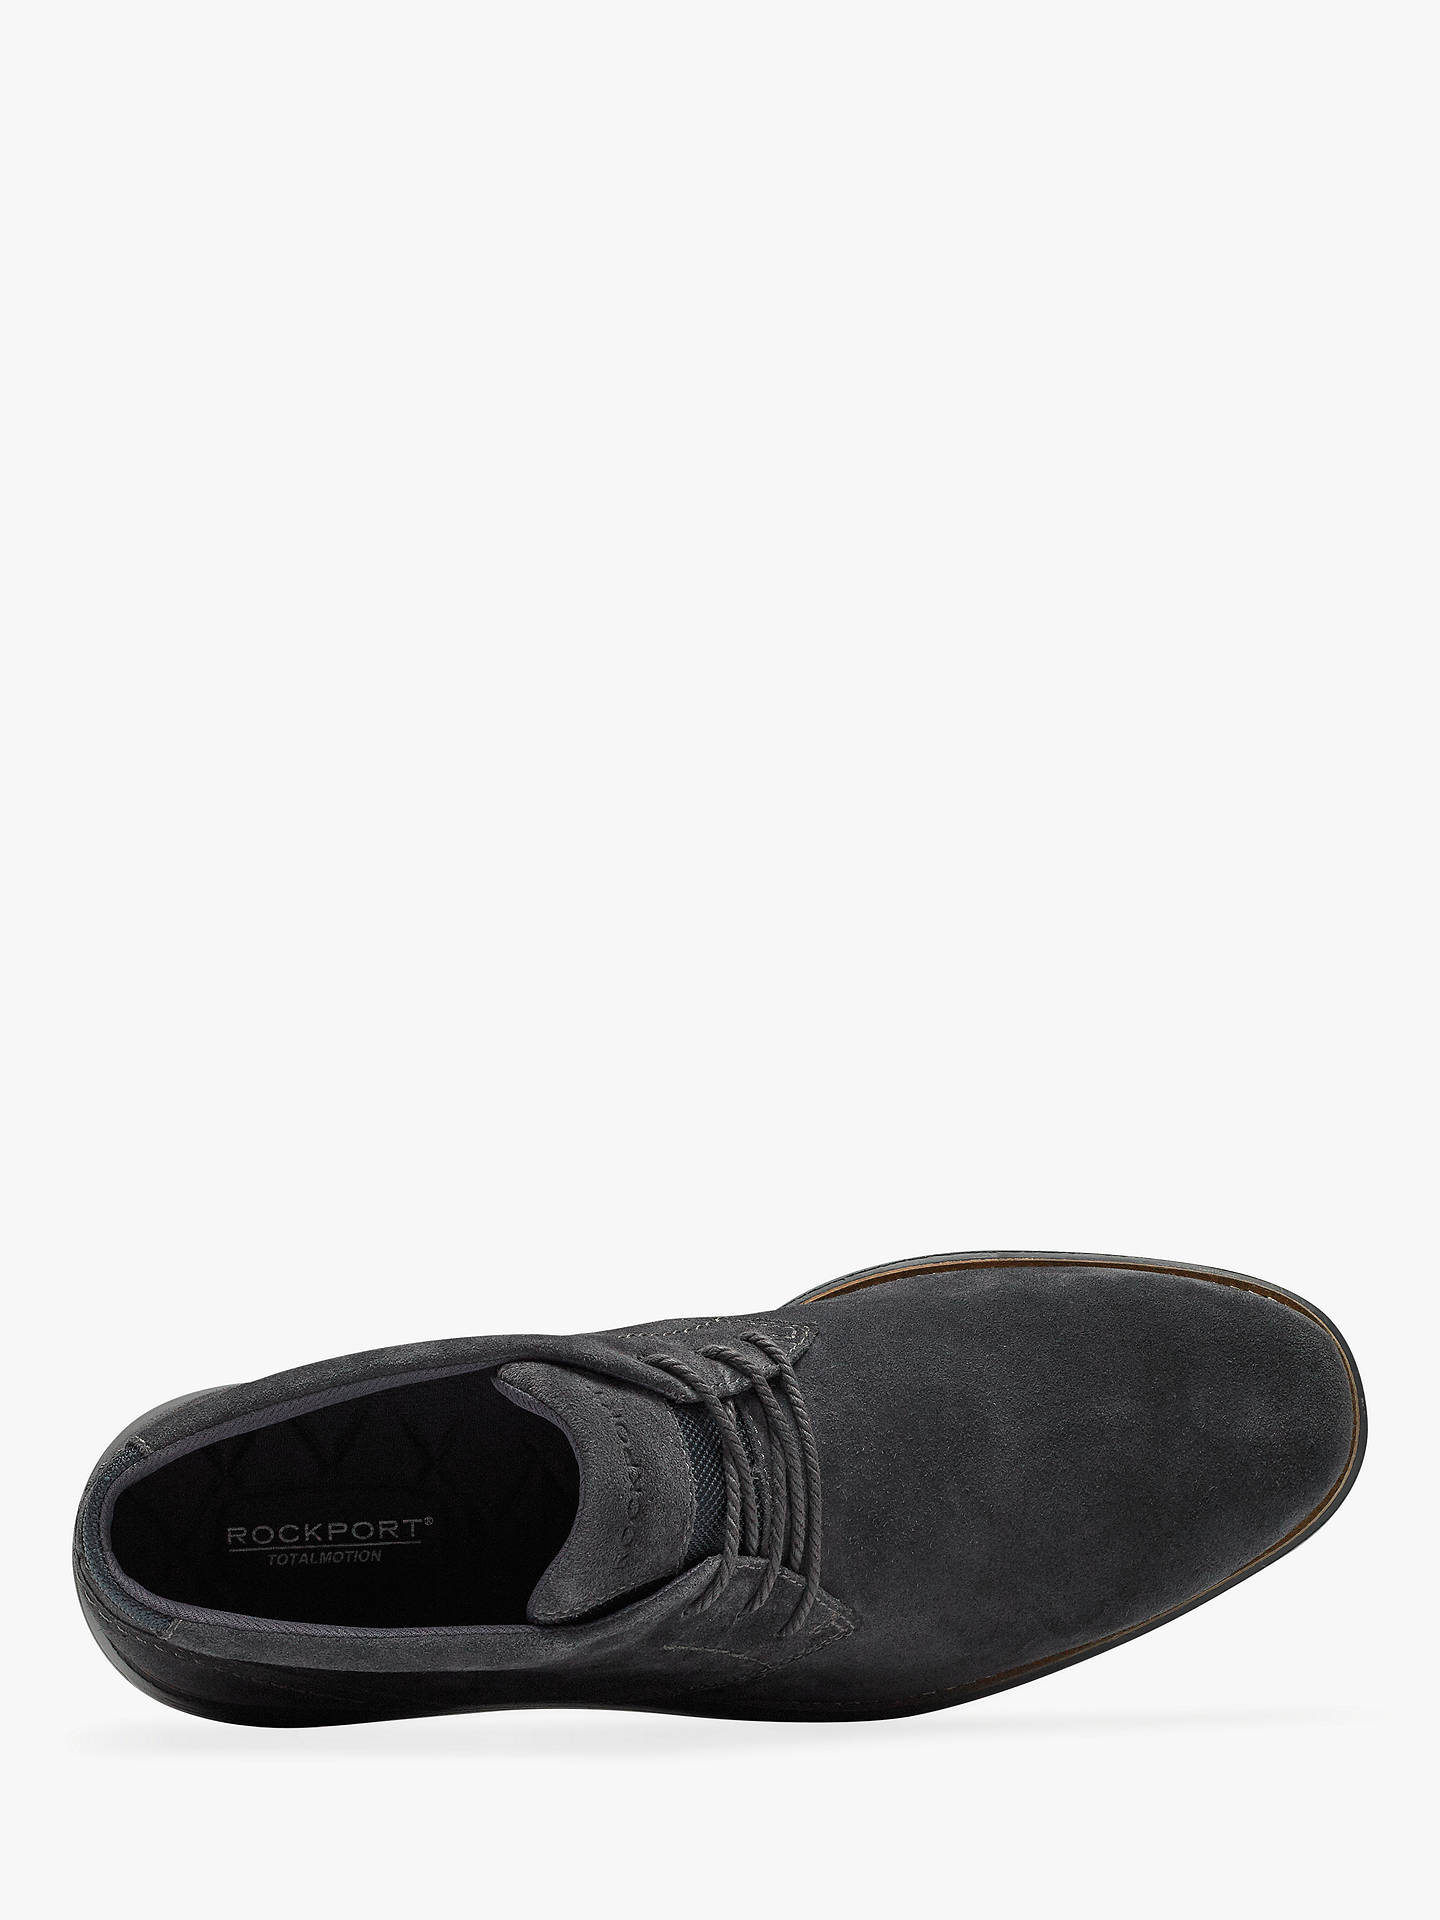 Buy Rockport Total Motion C.F. Stead Suede Sports Chukka Boots, Winter Smoke, 7 Online at johnlewis.com